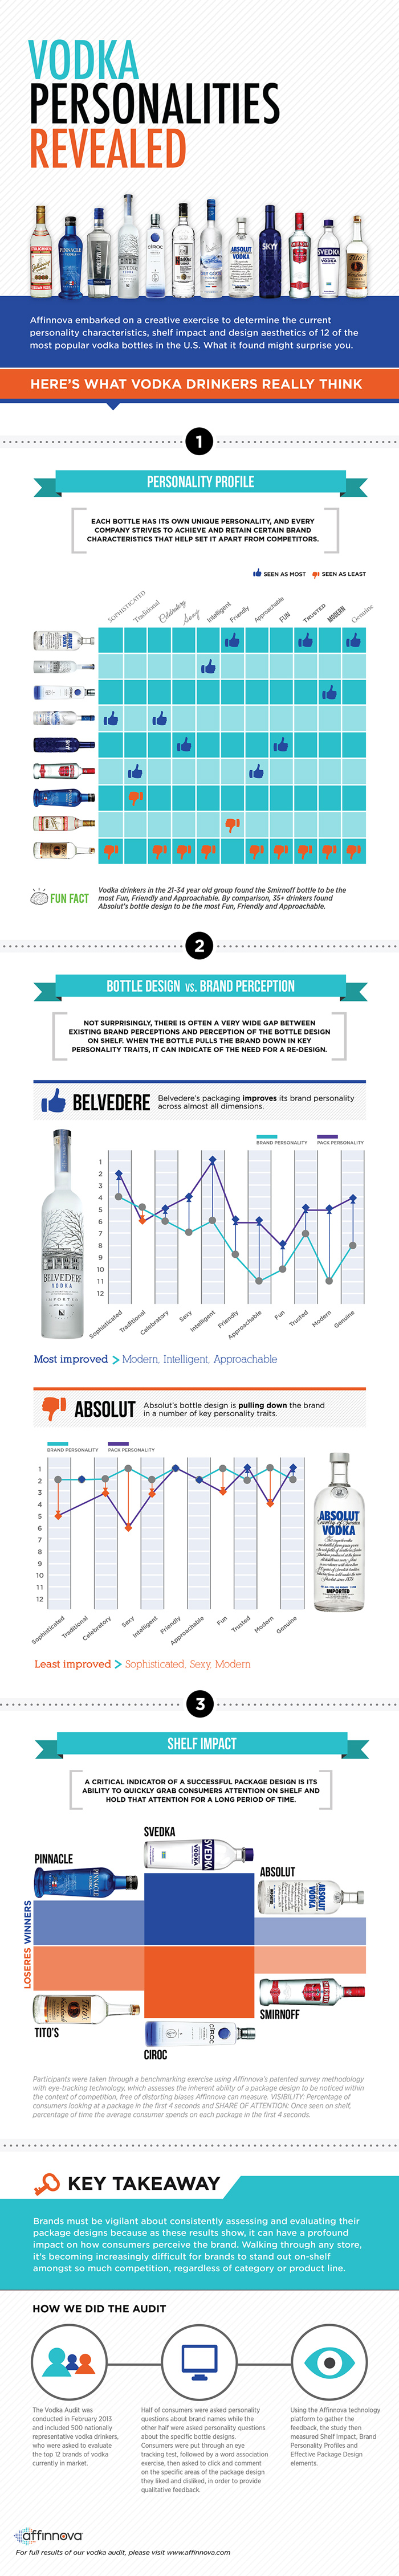 vodka infographic